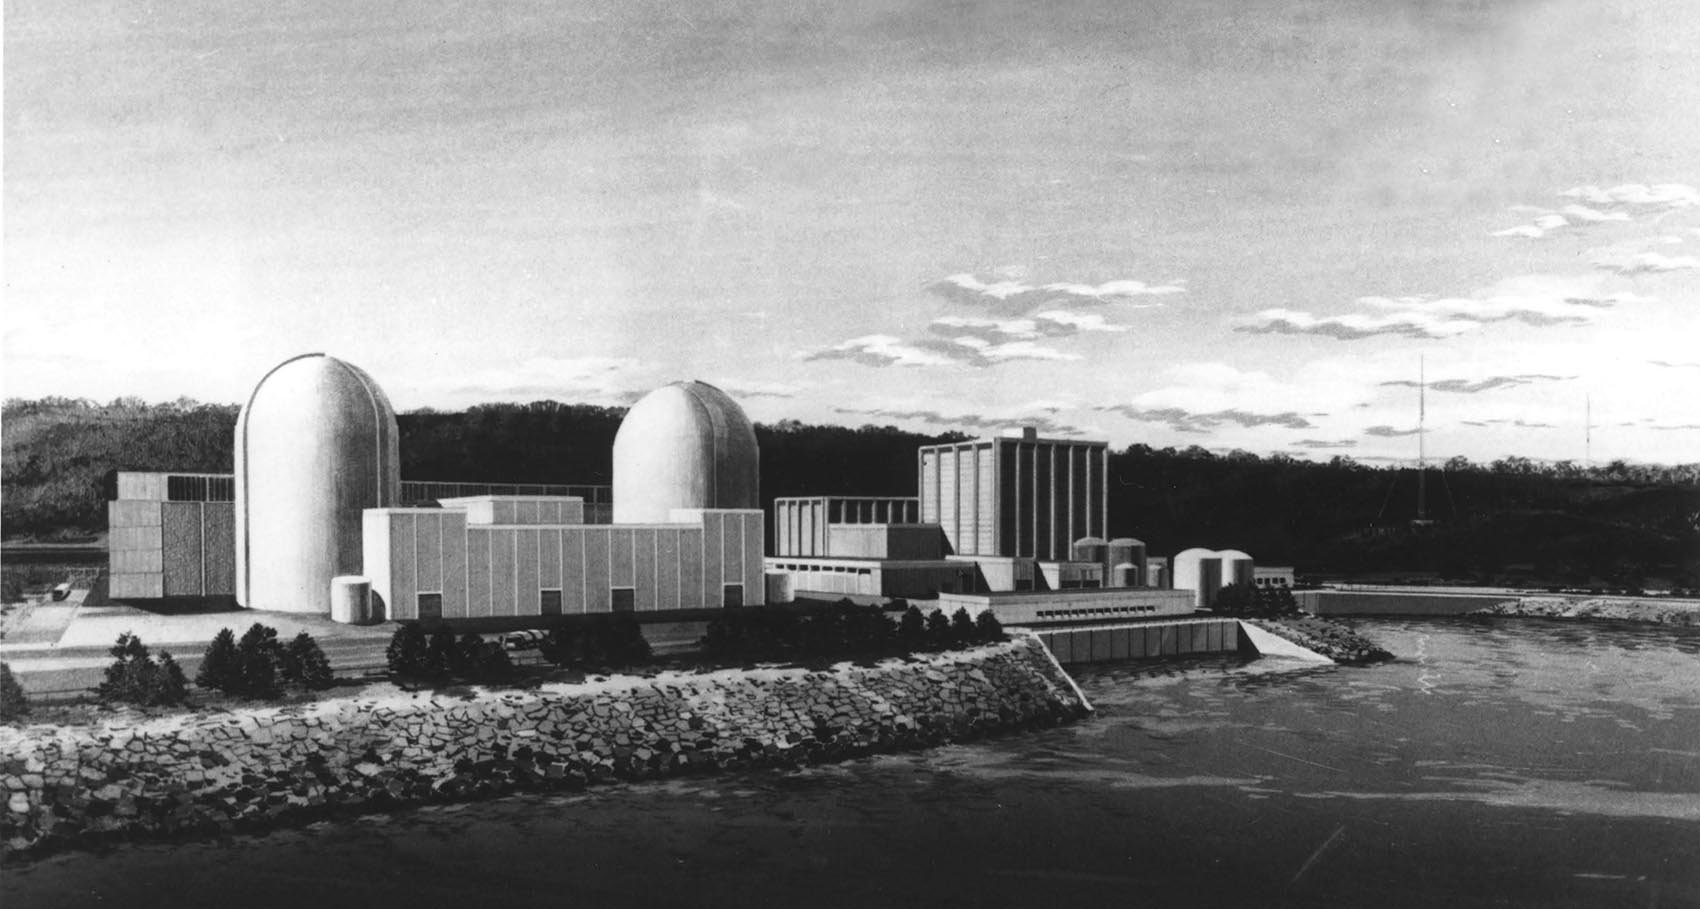 Timeline: The 52-Year History Of The Pilgrim Nuclear Plant